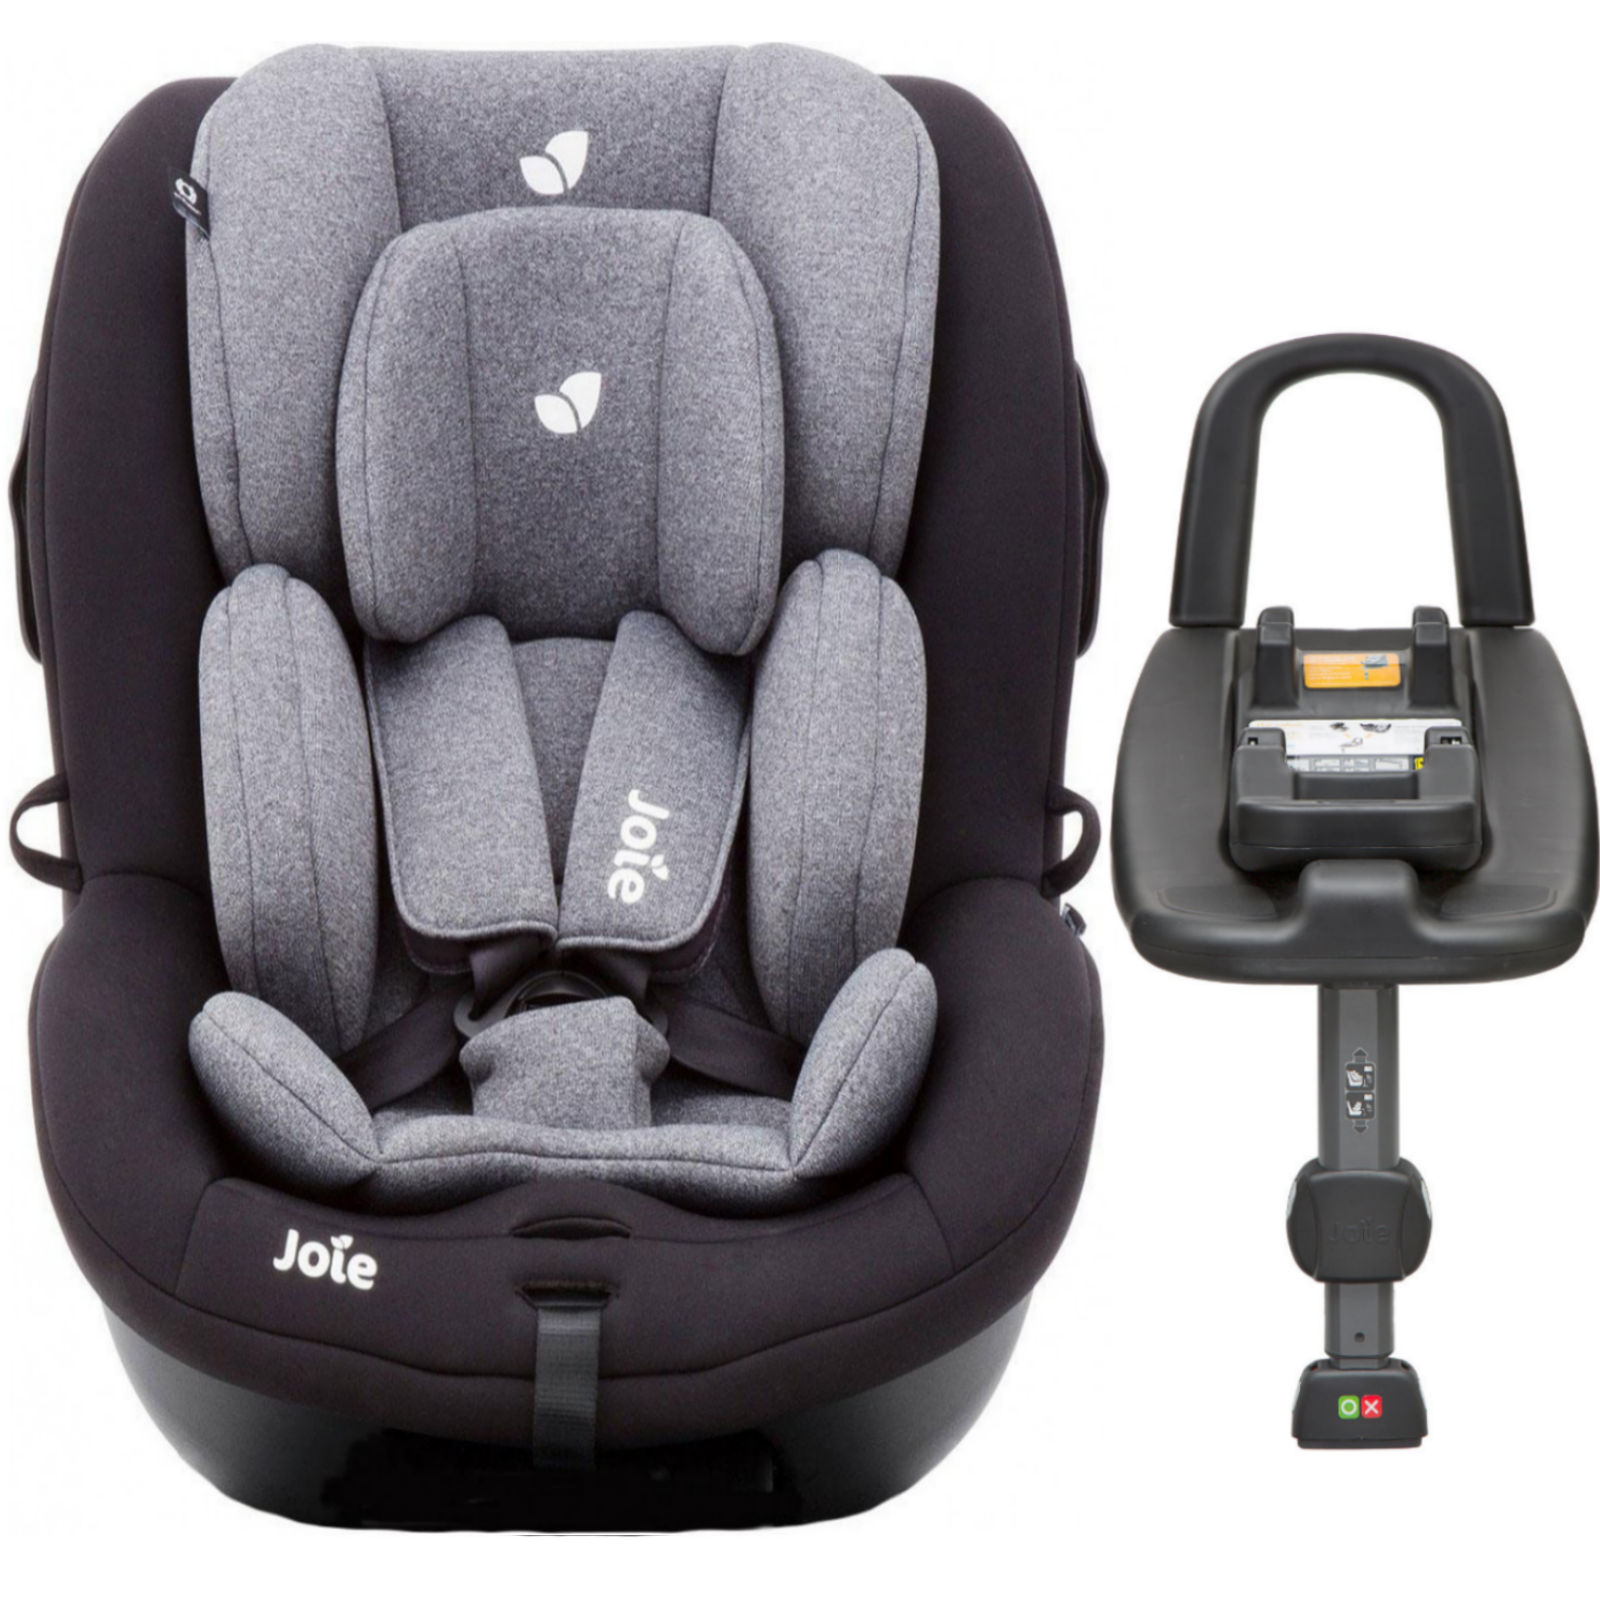 joie i anchor advance group 0 1 baby car seat and isofix base two tone black buy at online4baby. Black Bedroom Furniture Sets. Home Design Ideas